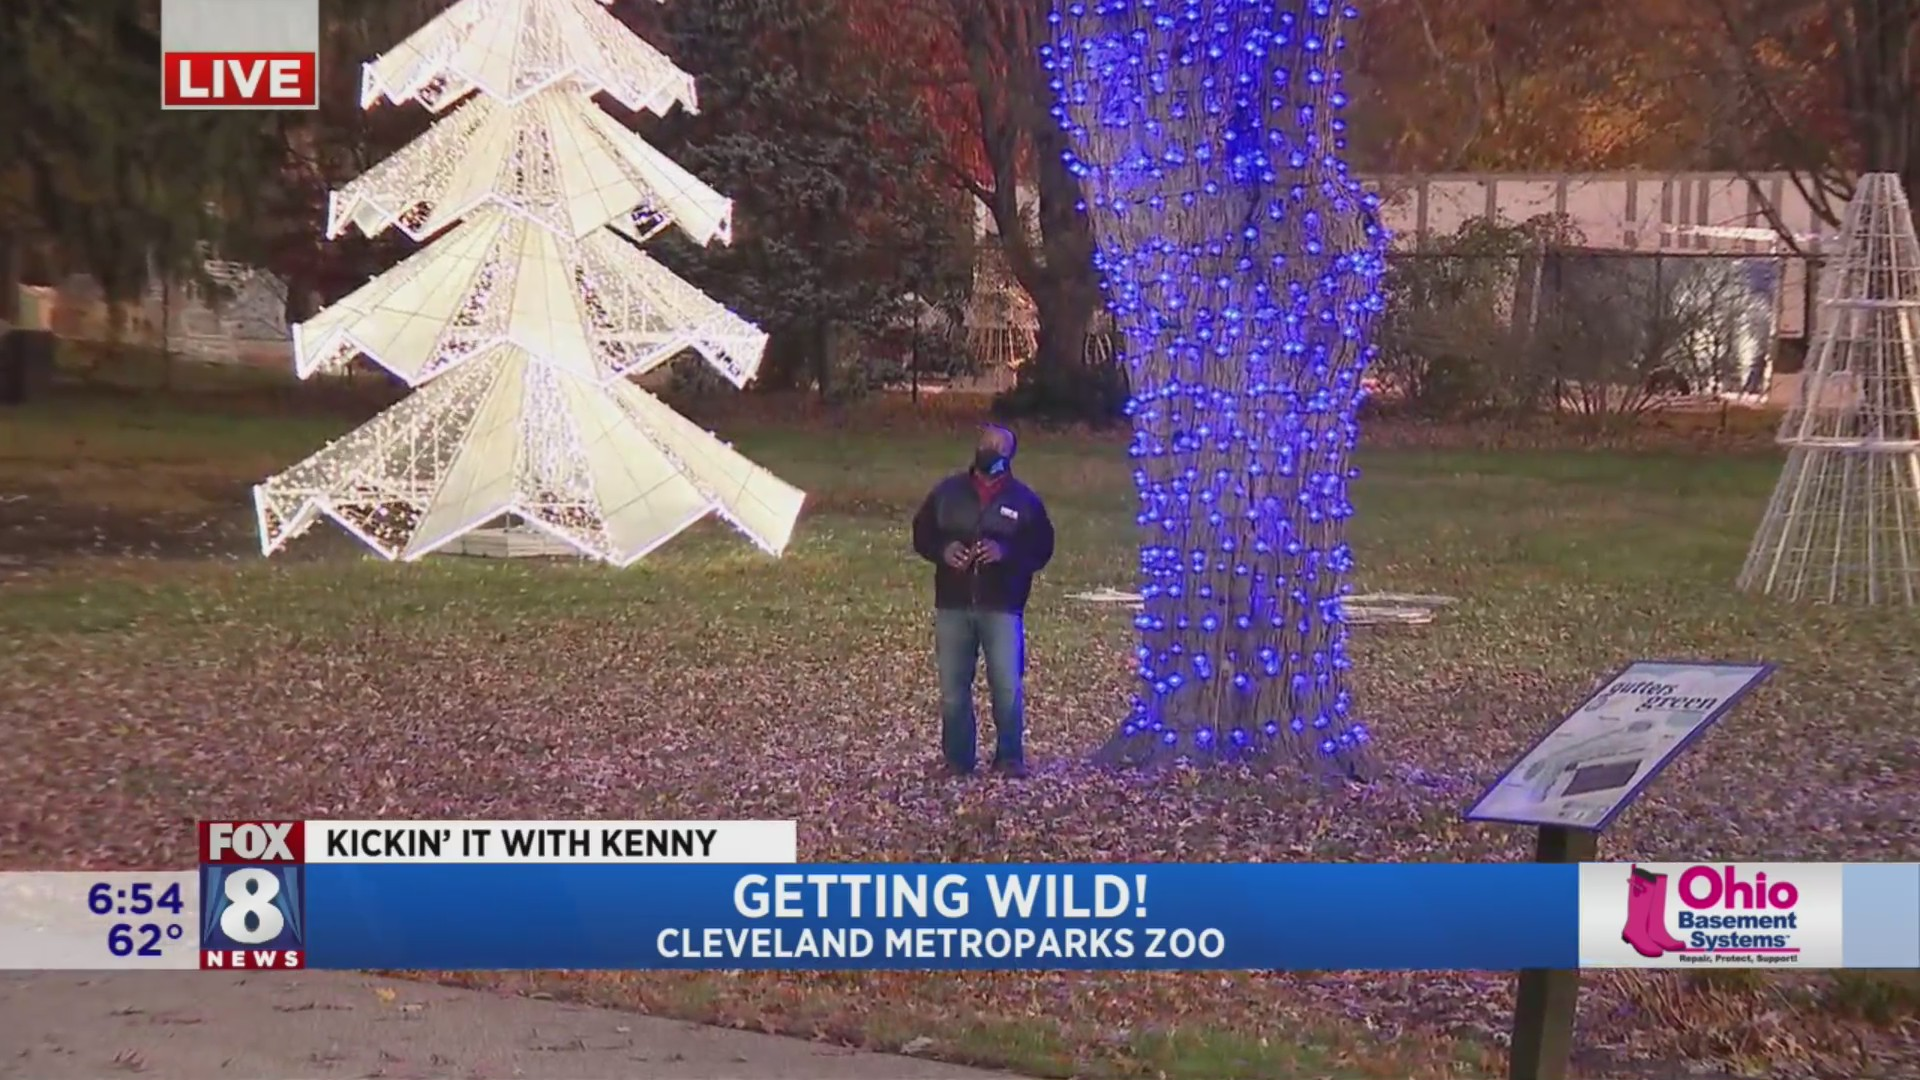 Kenny gets a little 'wild' at Cleveland Metroparks Zoo | fox8.com